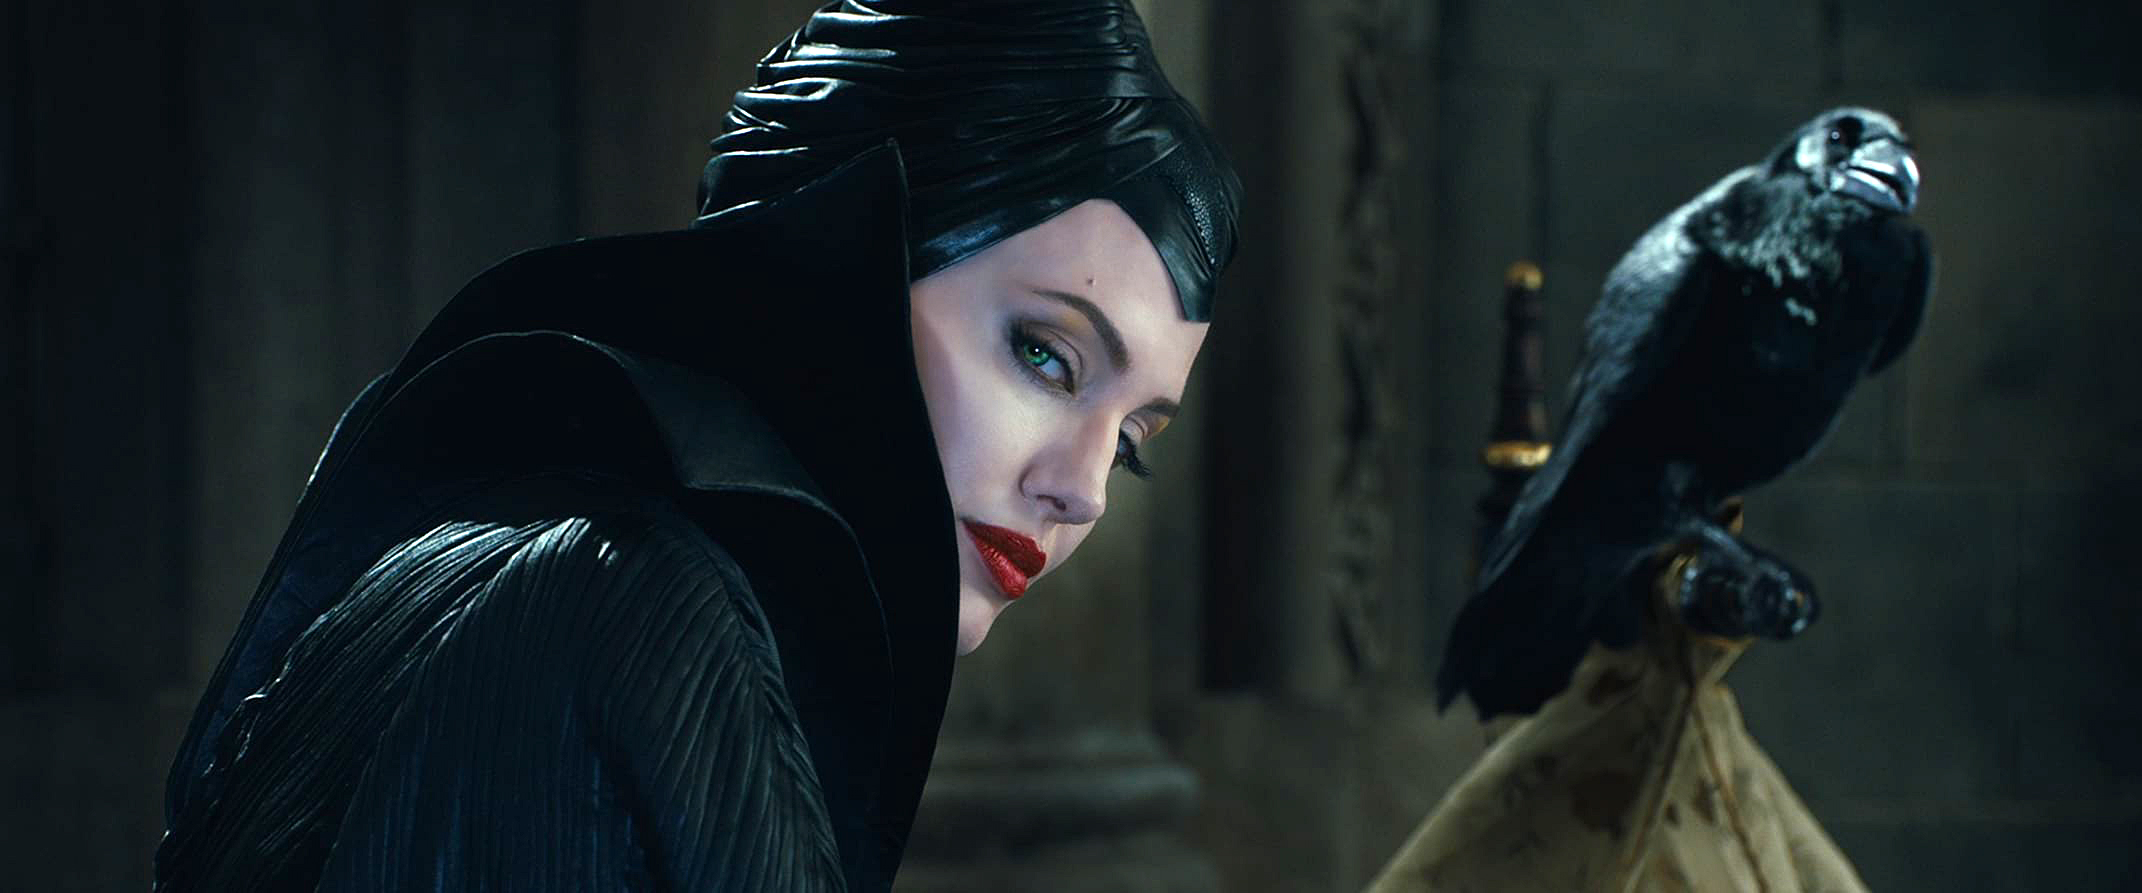 Maleficent A Witch And Her Bird